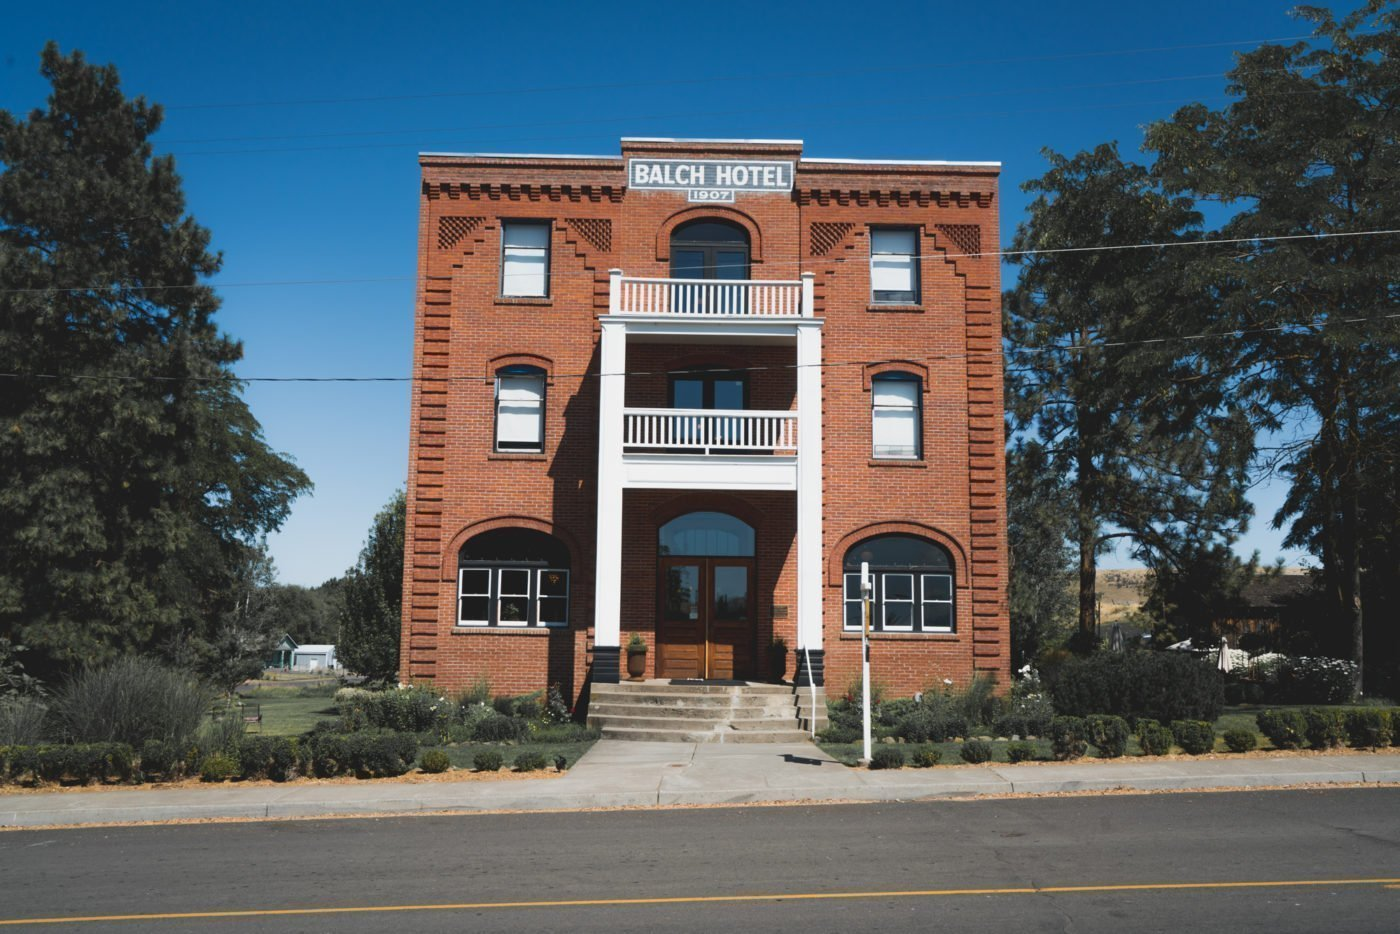 Balch Hotel, Oregon